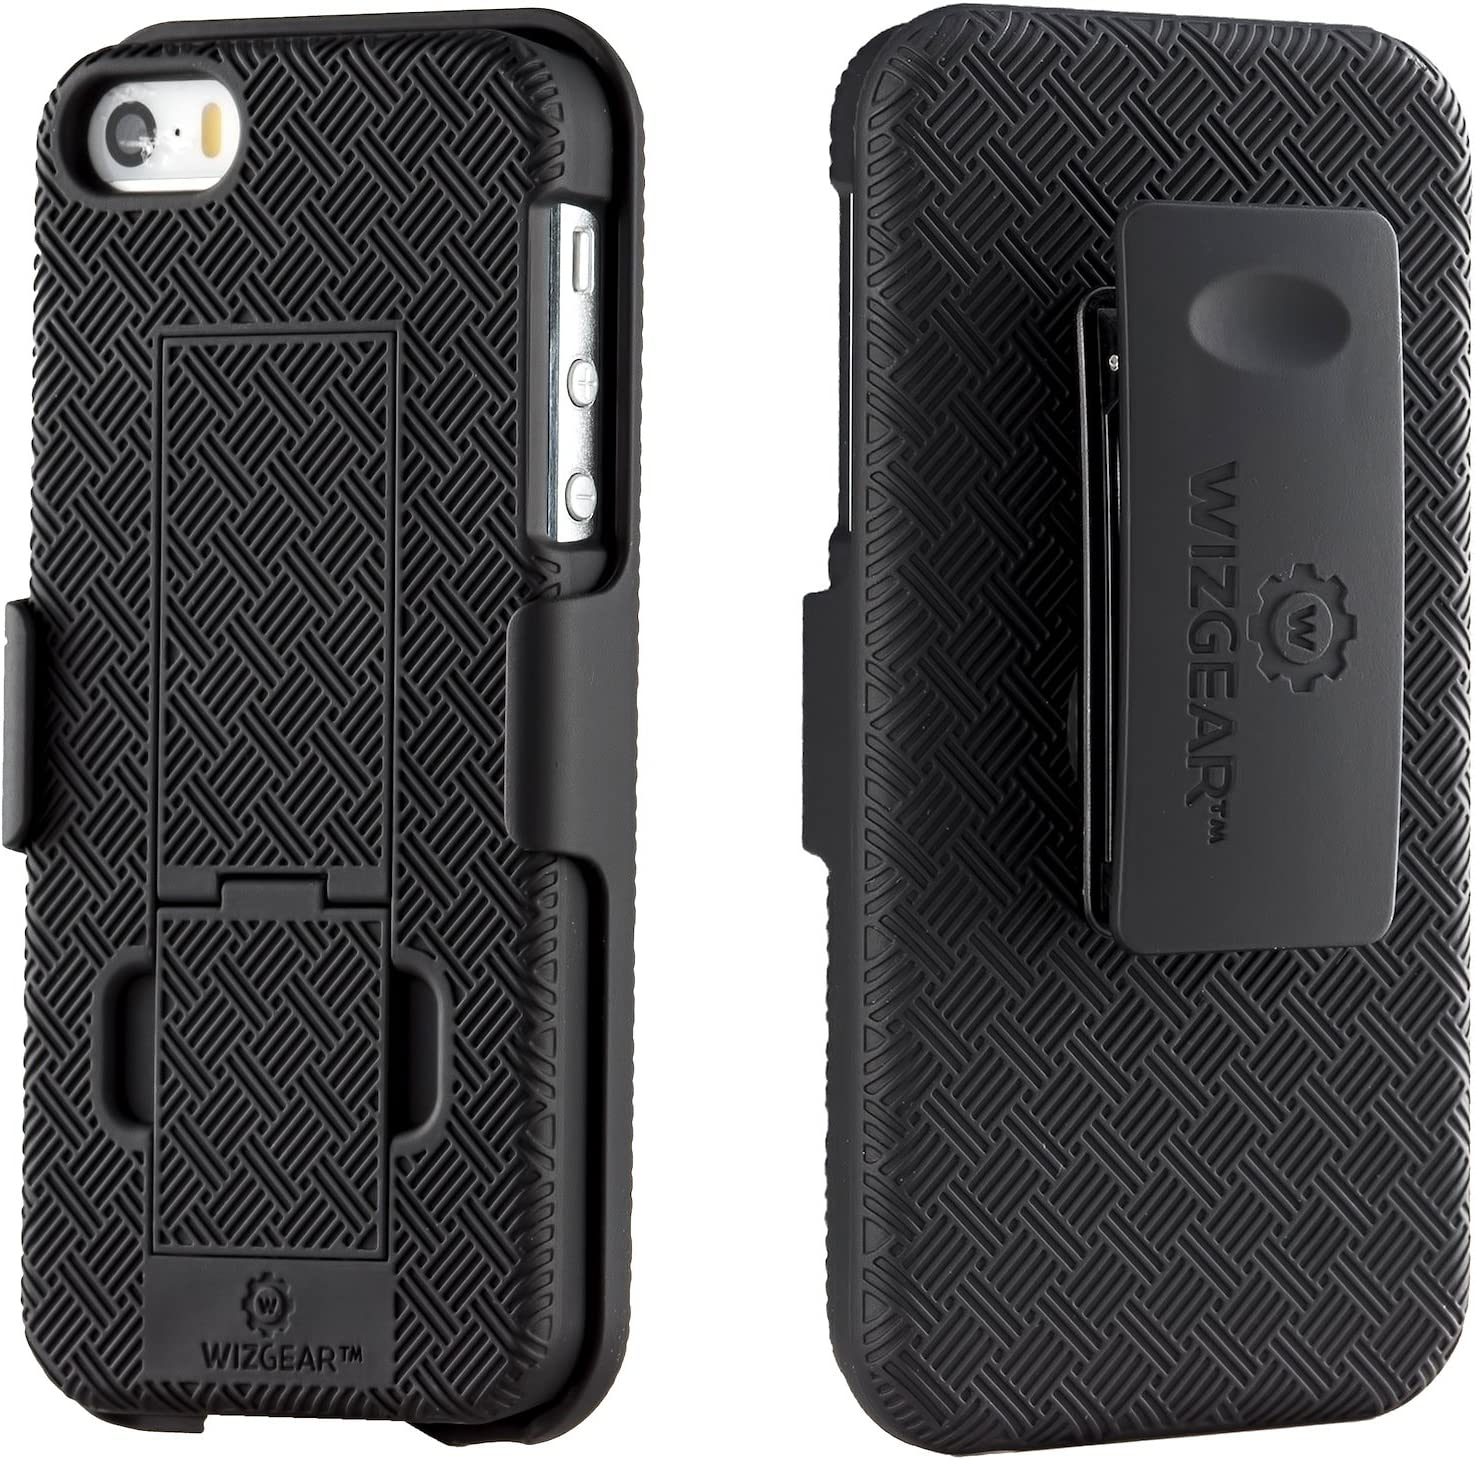 WizGear Shell Holster Combo Case for Apple iPhone Se / 5 / 5S with Kick-Stand and Belt Clip (Doesn't Fit iPhone SE 2020)